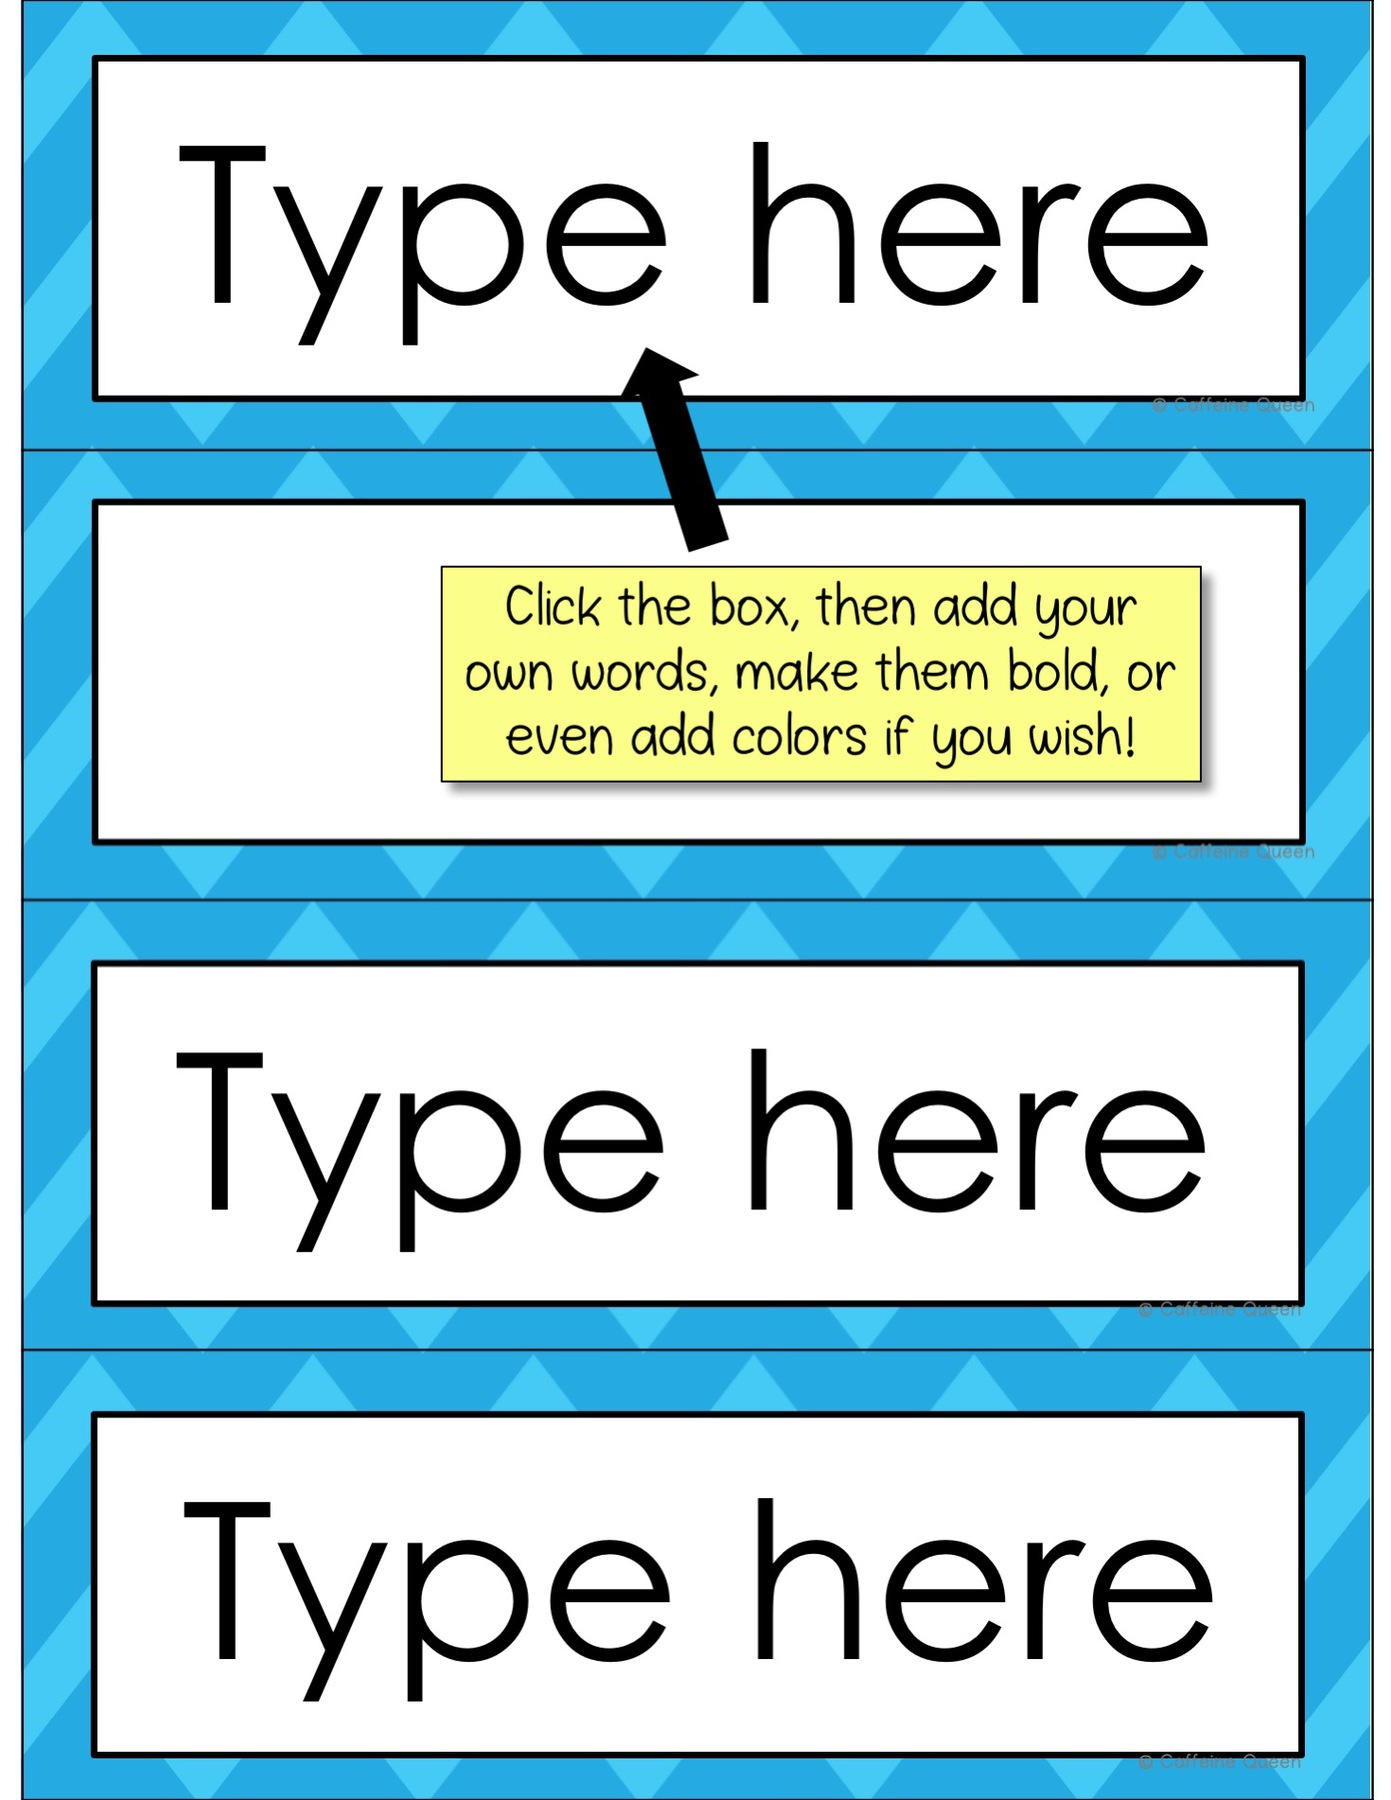 Easily edit the high frequency sight words included in this word wall resource